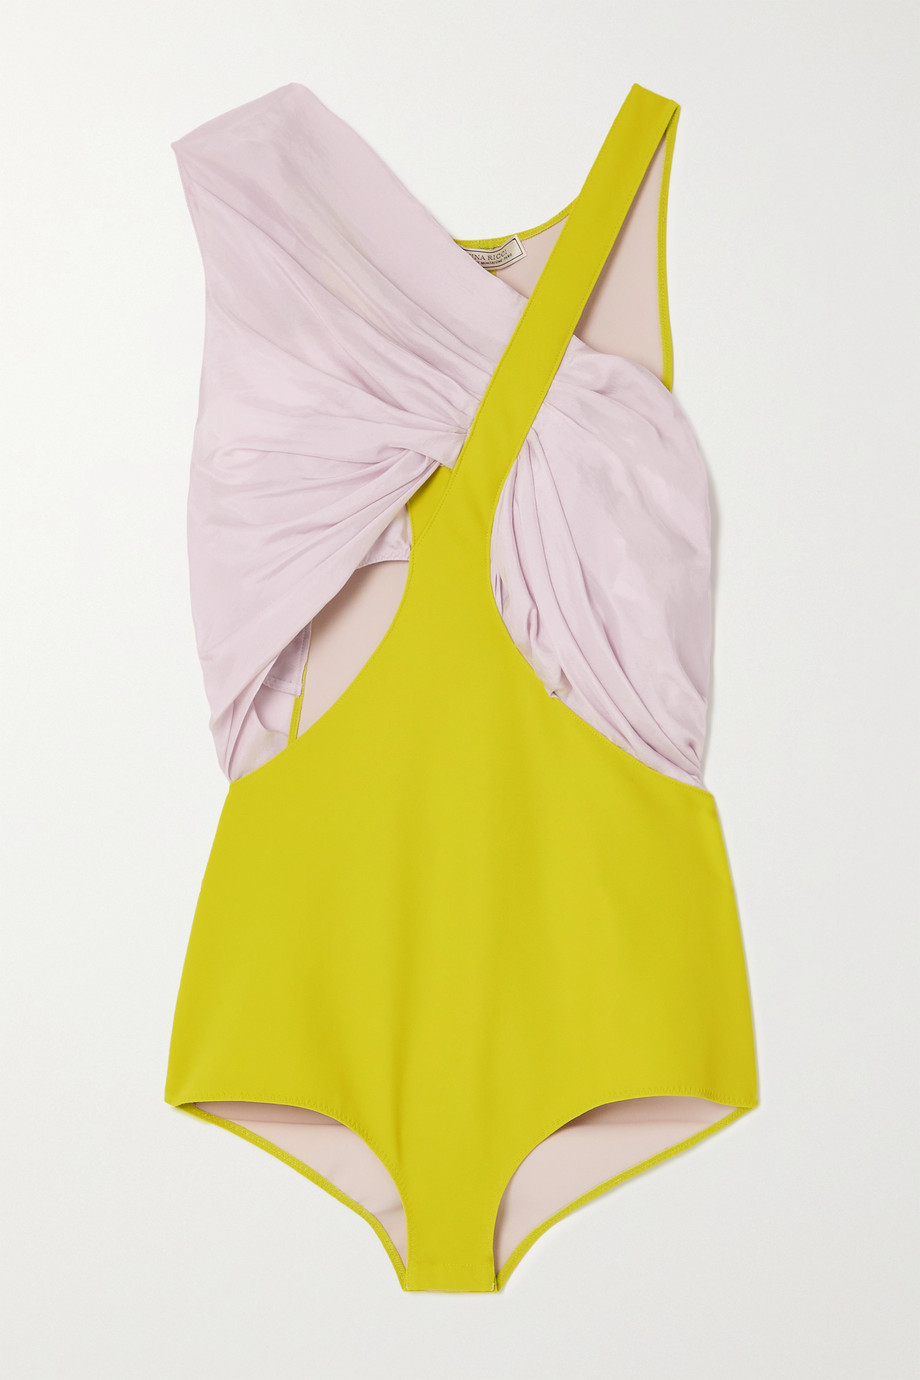 NINA RICCI Gathered silk-satin and scuba bodysuit